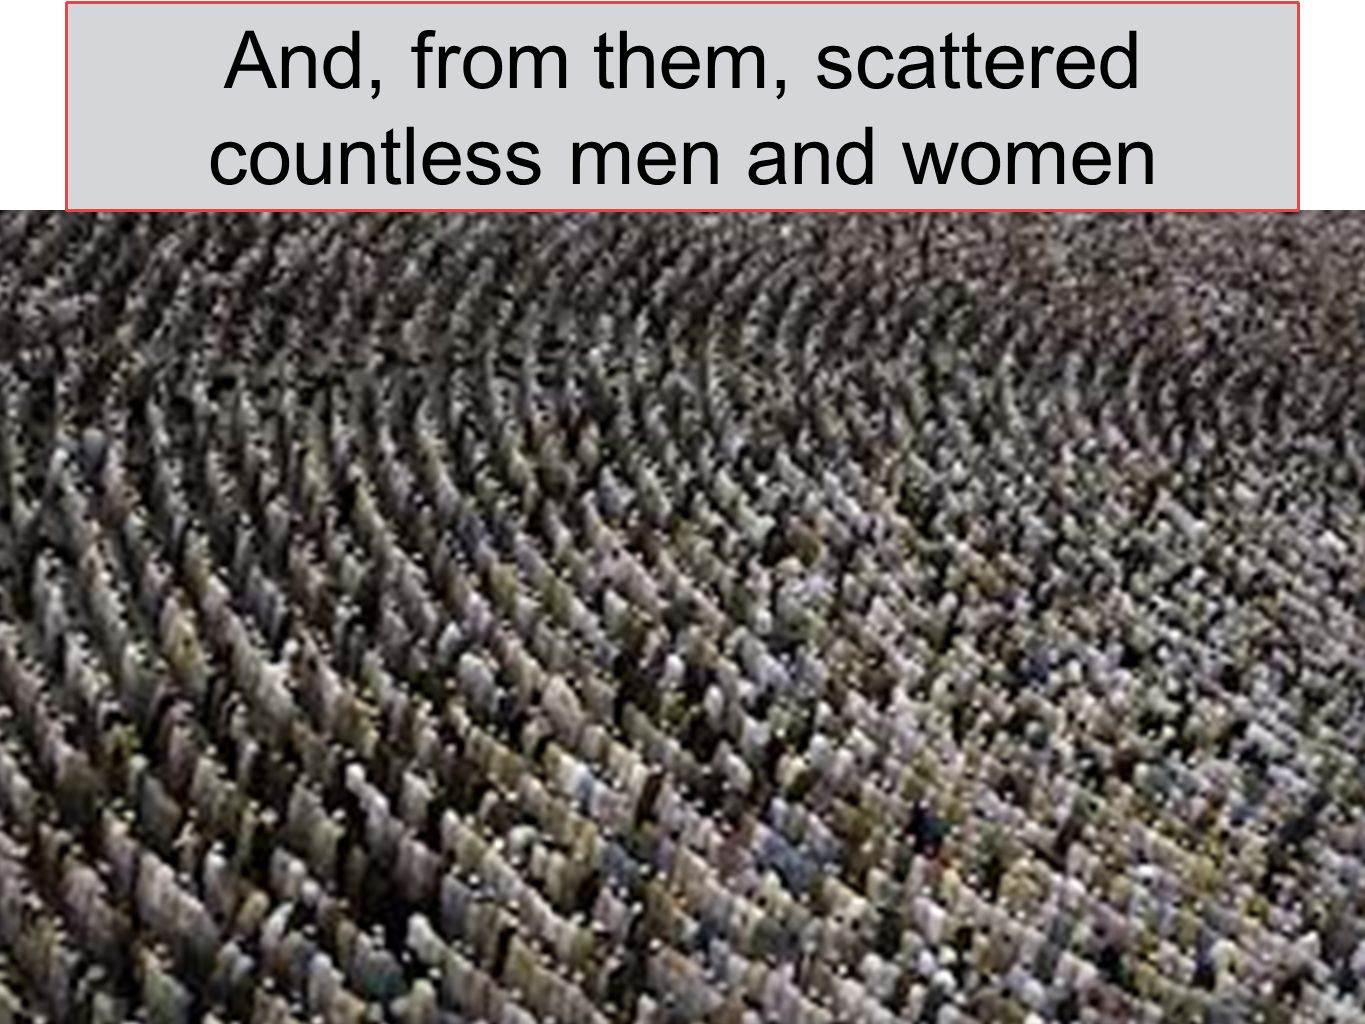 And, from them, scattered countless men and women